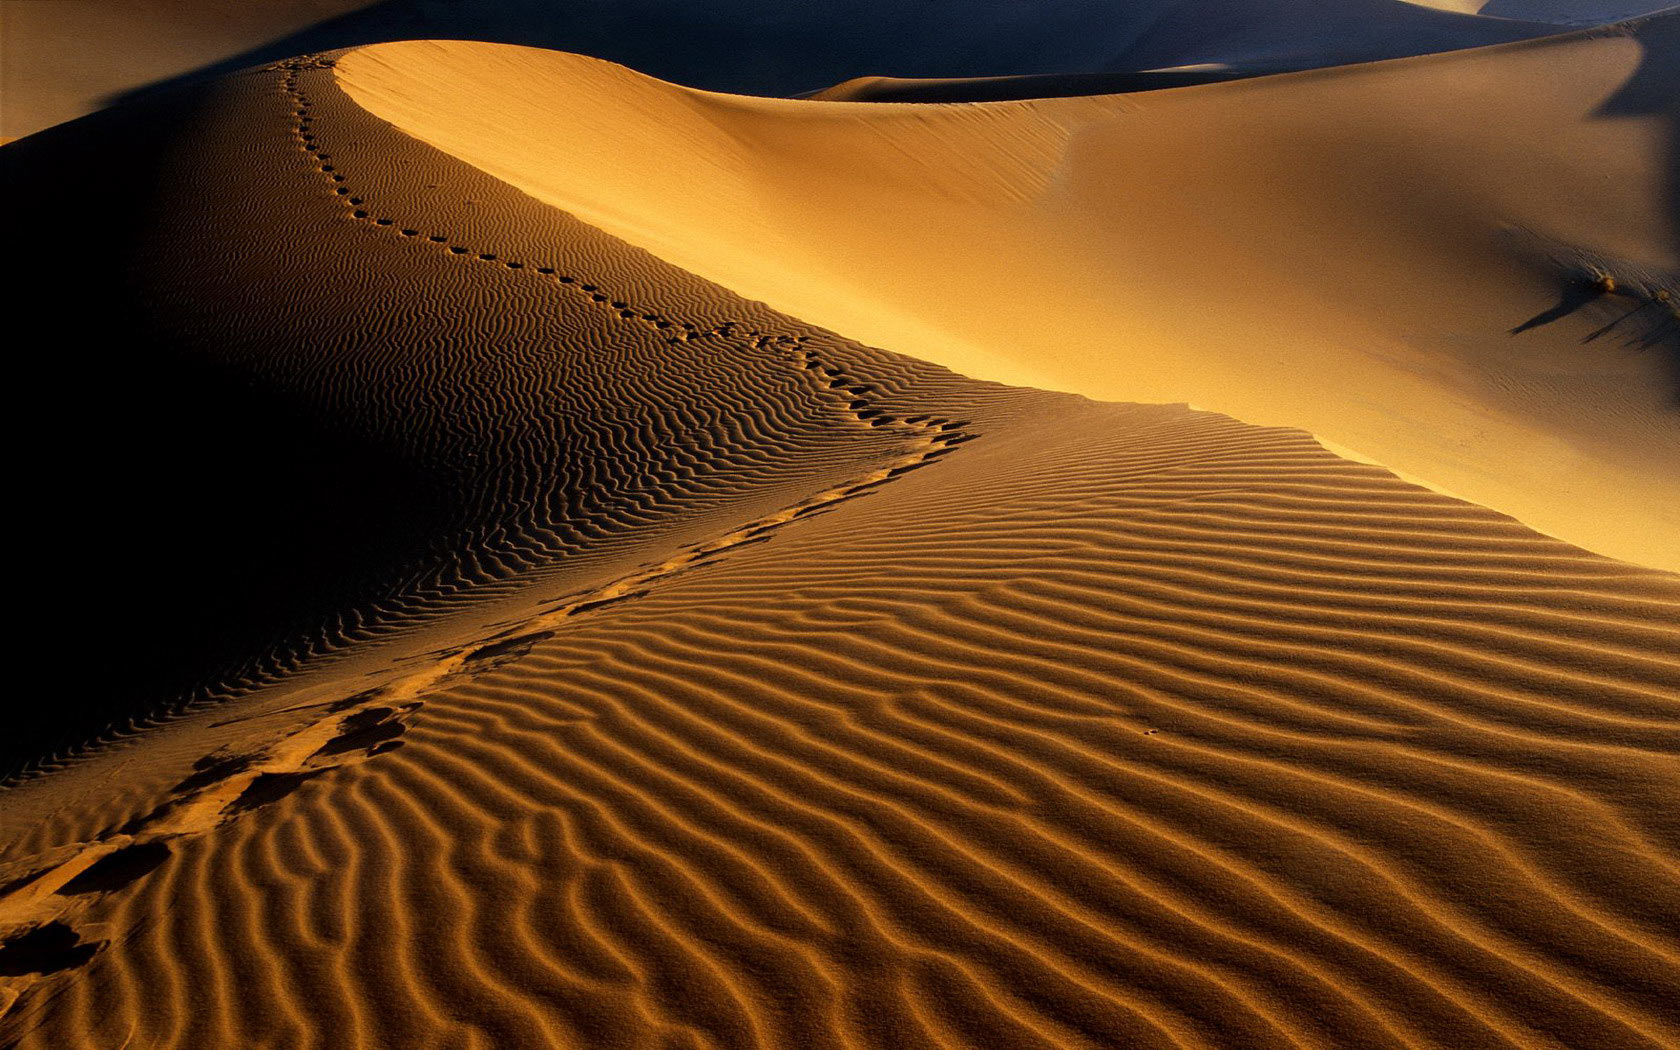 Desktop Wallpaper · Gallery · Computers Desert sand vista background